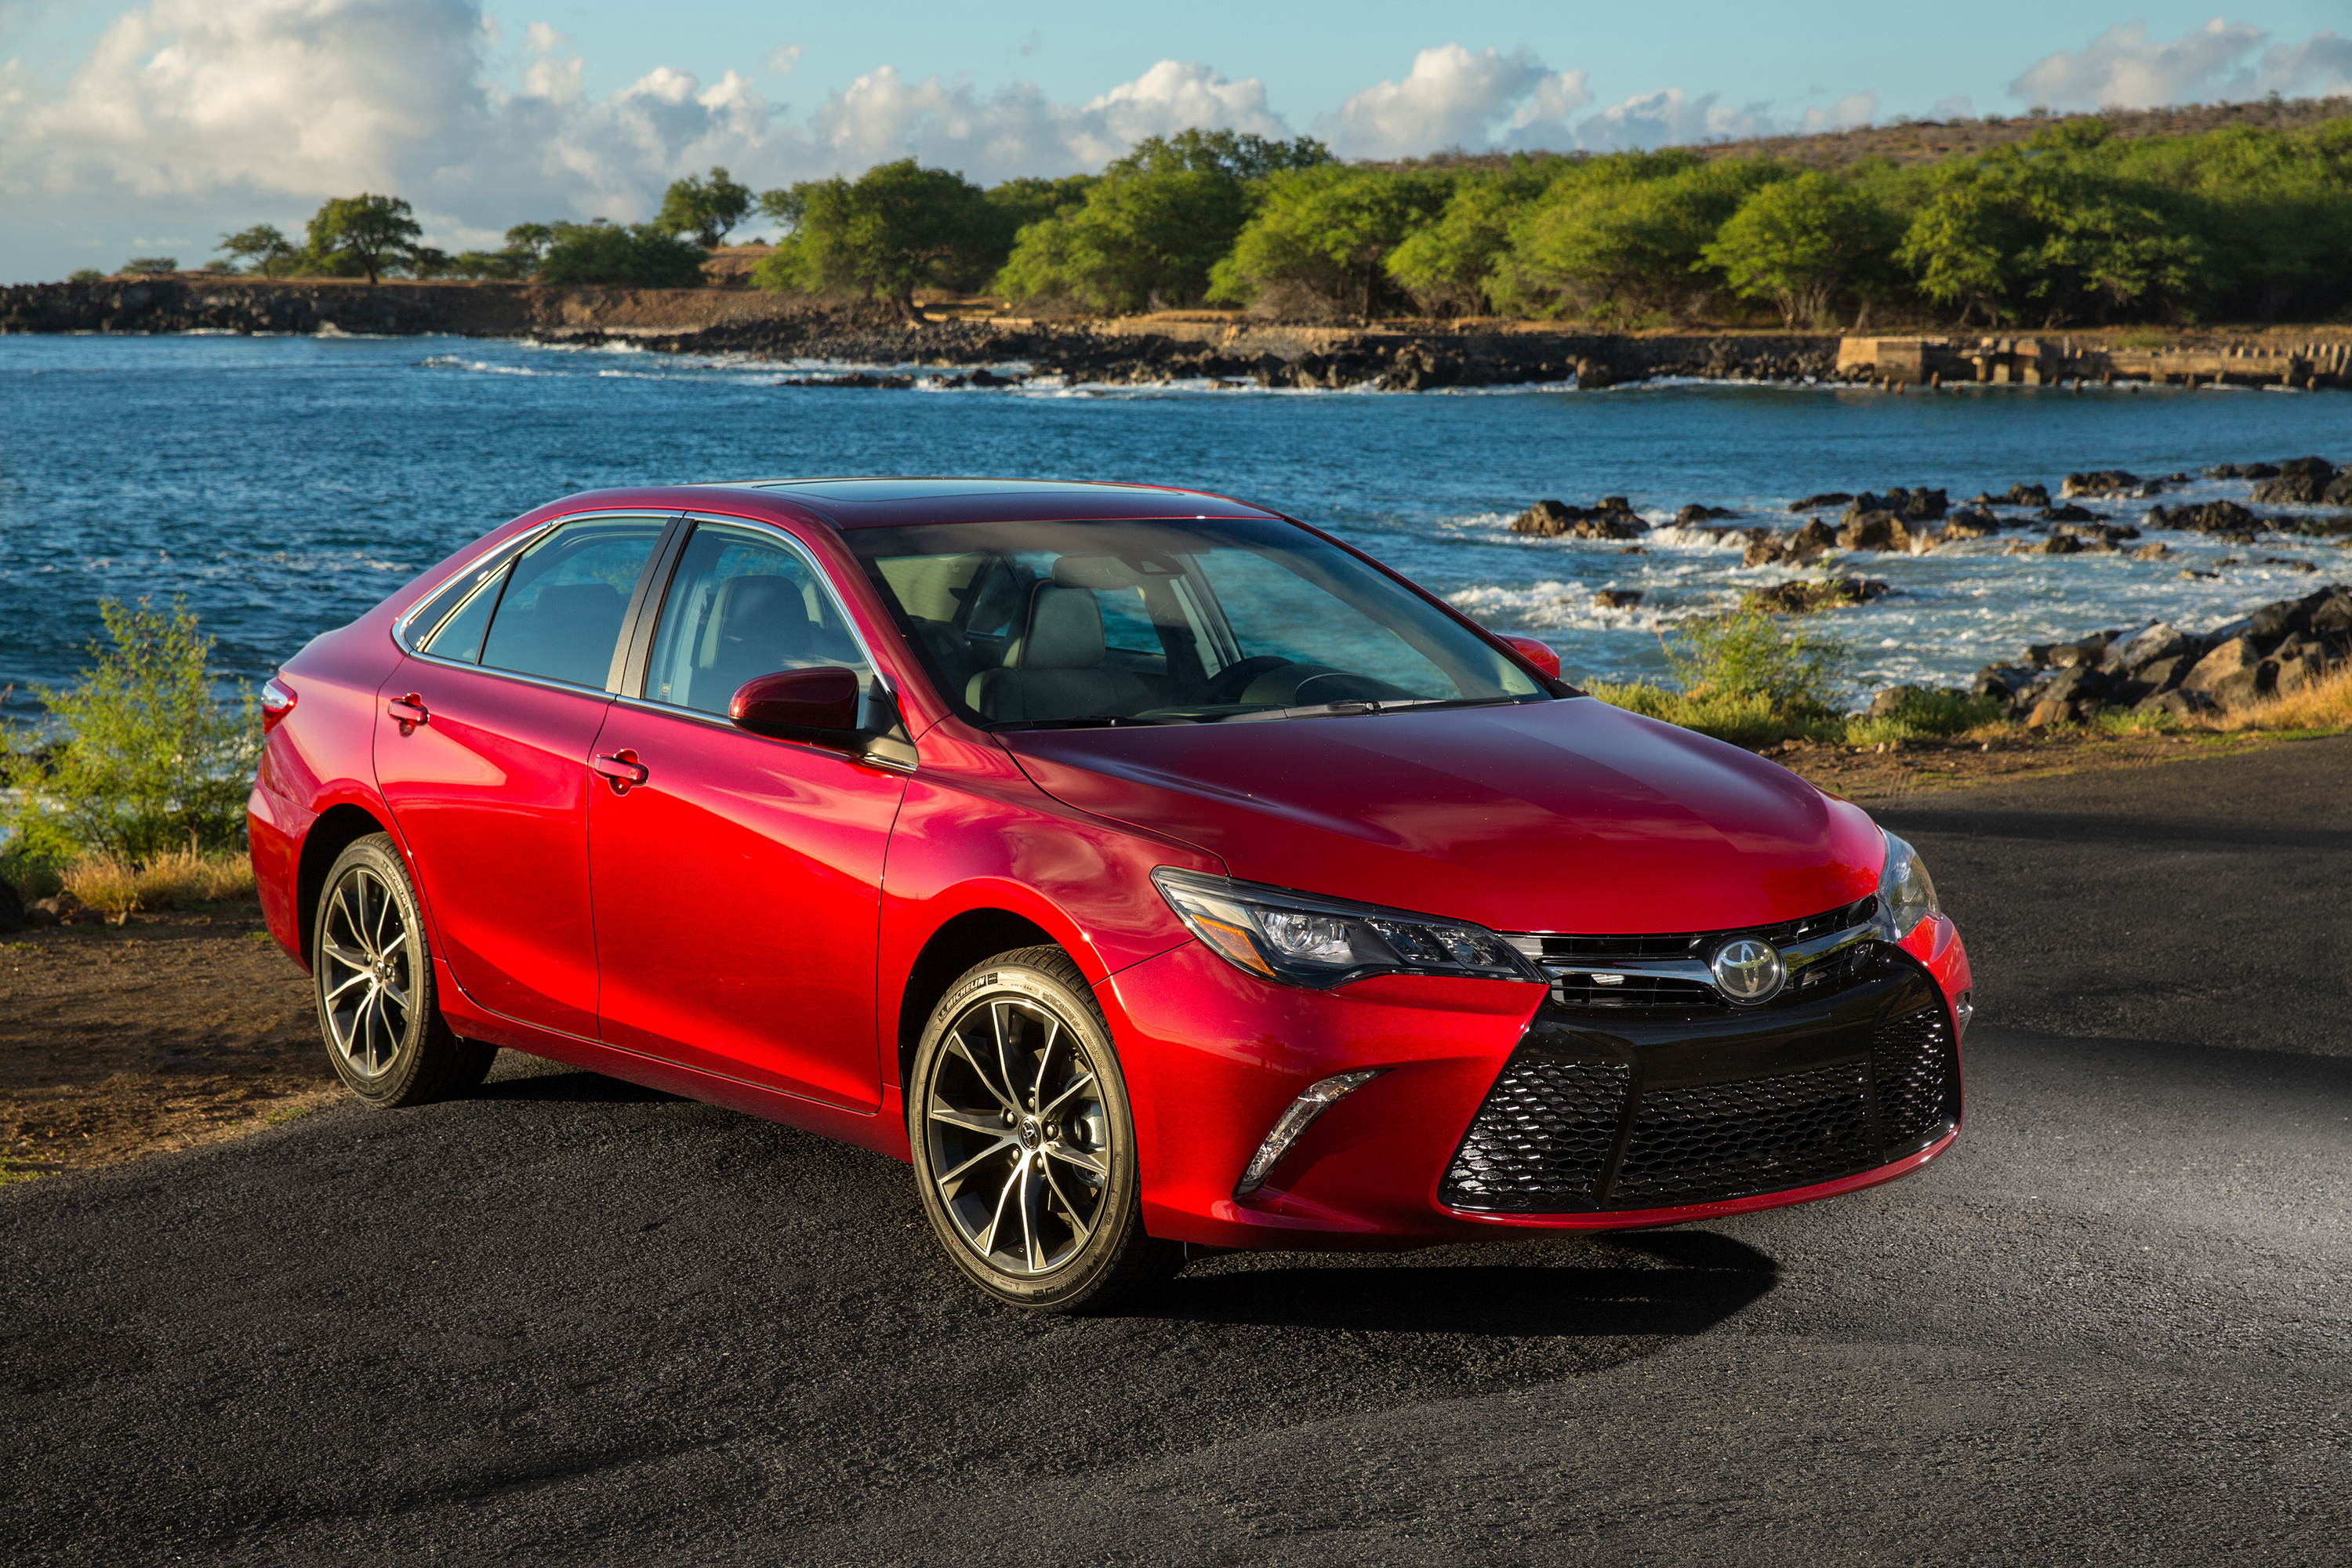 Rita cook toyota takes 2015 camry to whole new level washington times